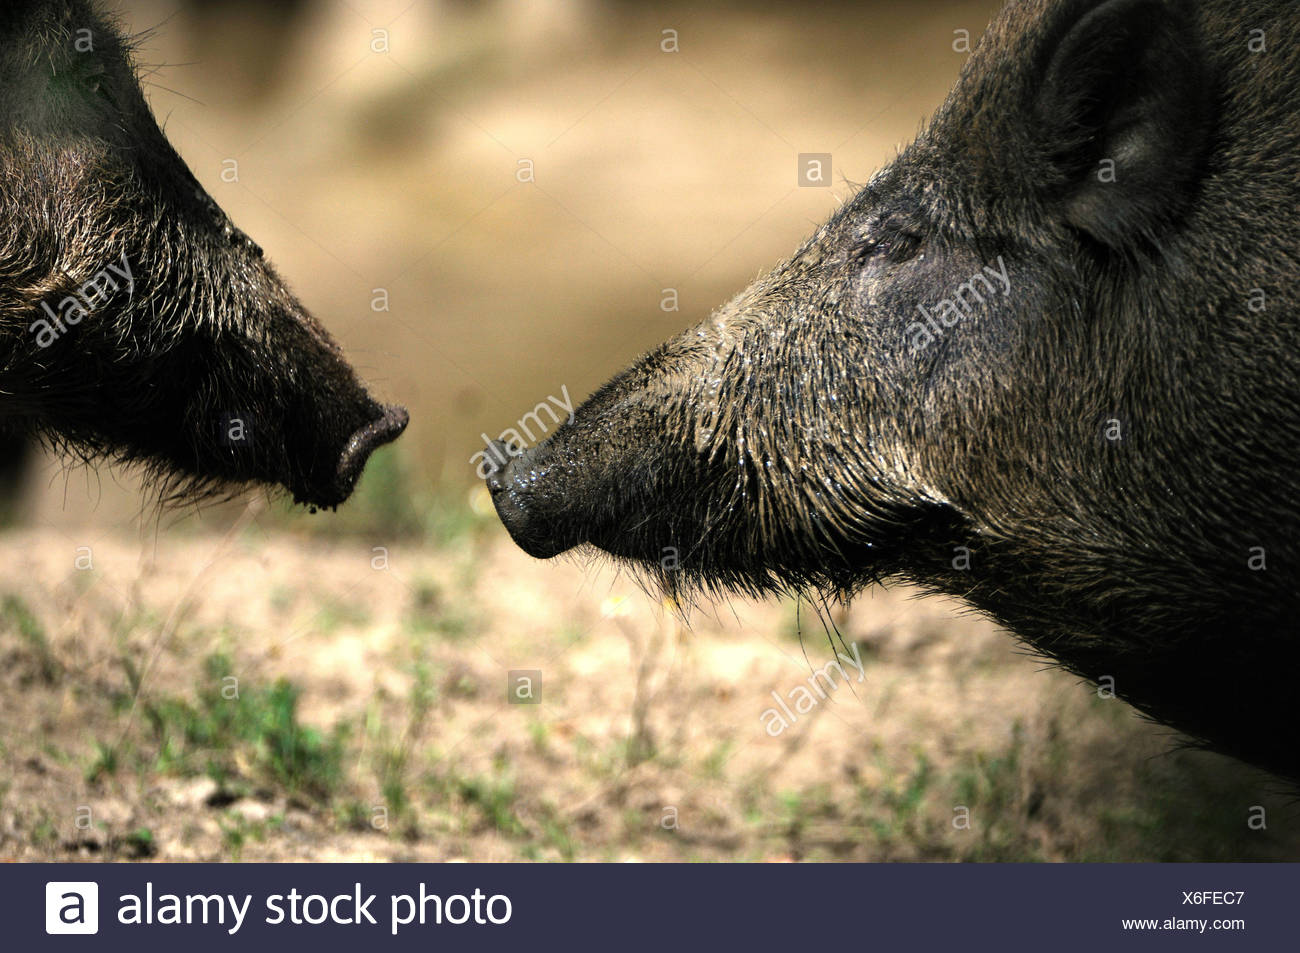 Wild boar Sus scrofa scrofa sow sows wild boars cloven-hoofed animal pigs pig vertebrates mammals wild sows animal animals Ge - Stock Image